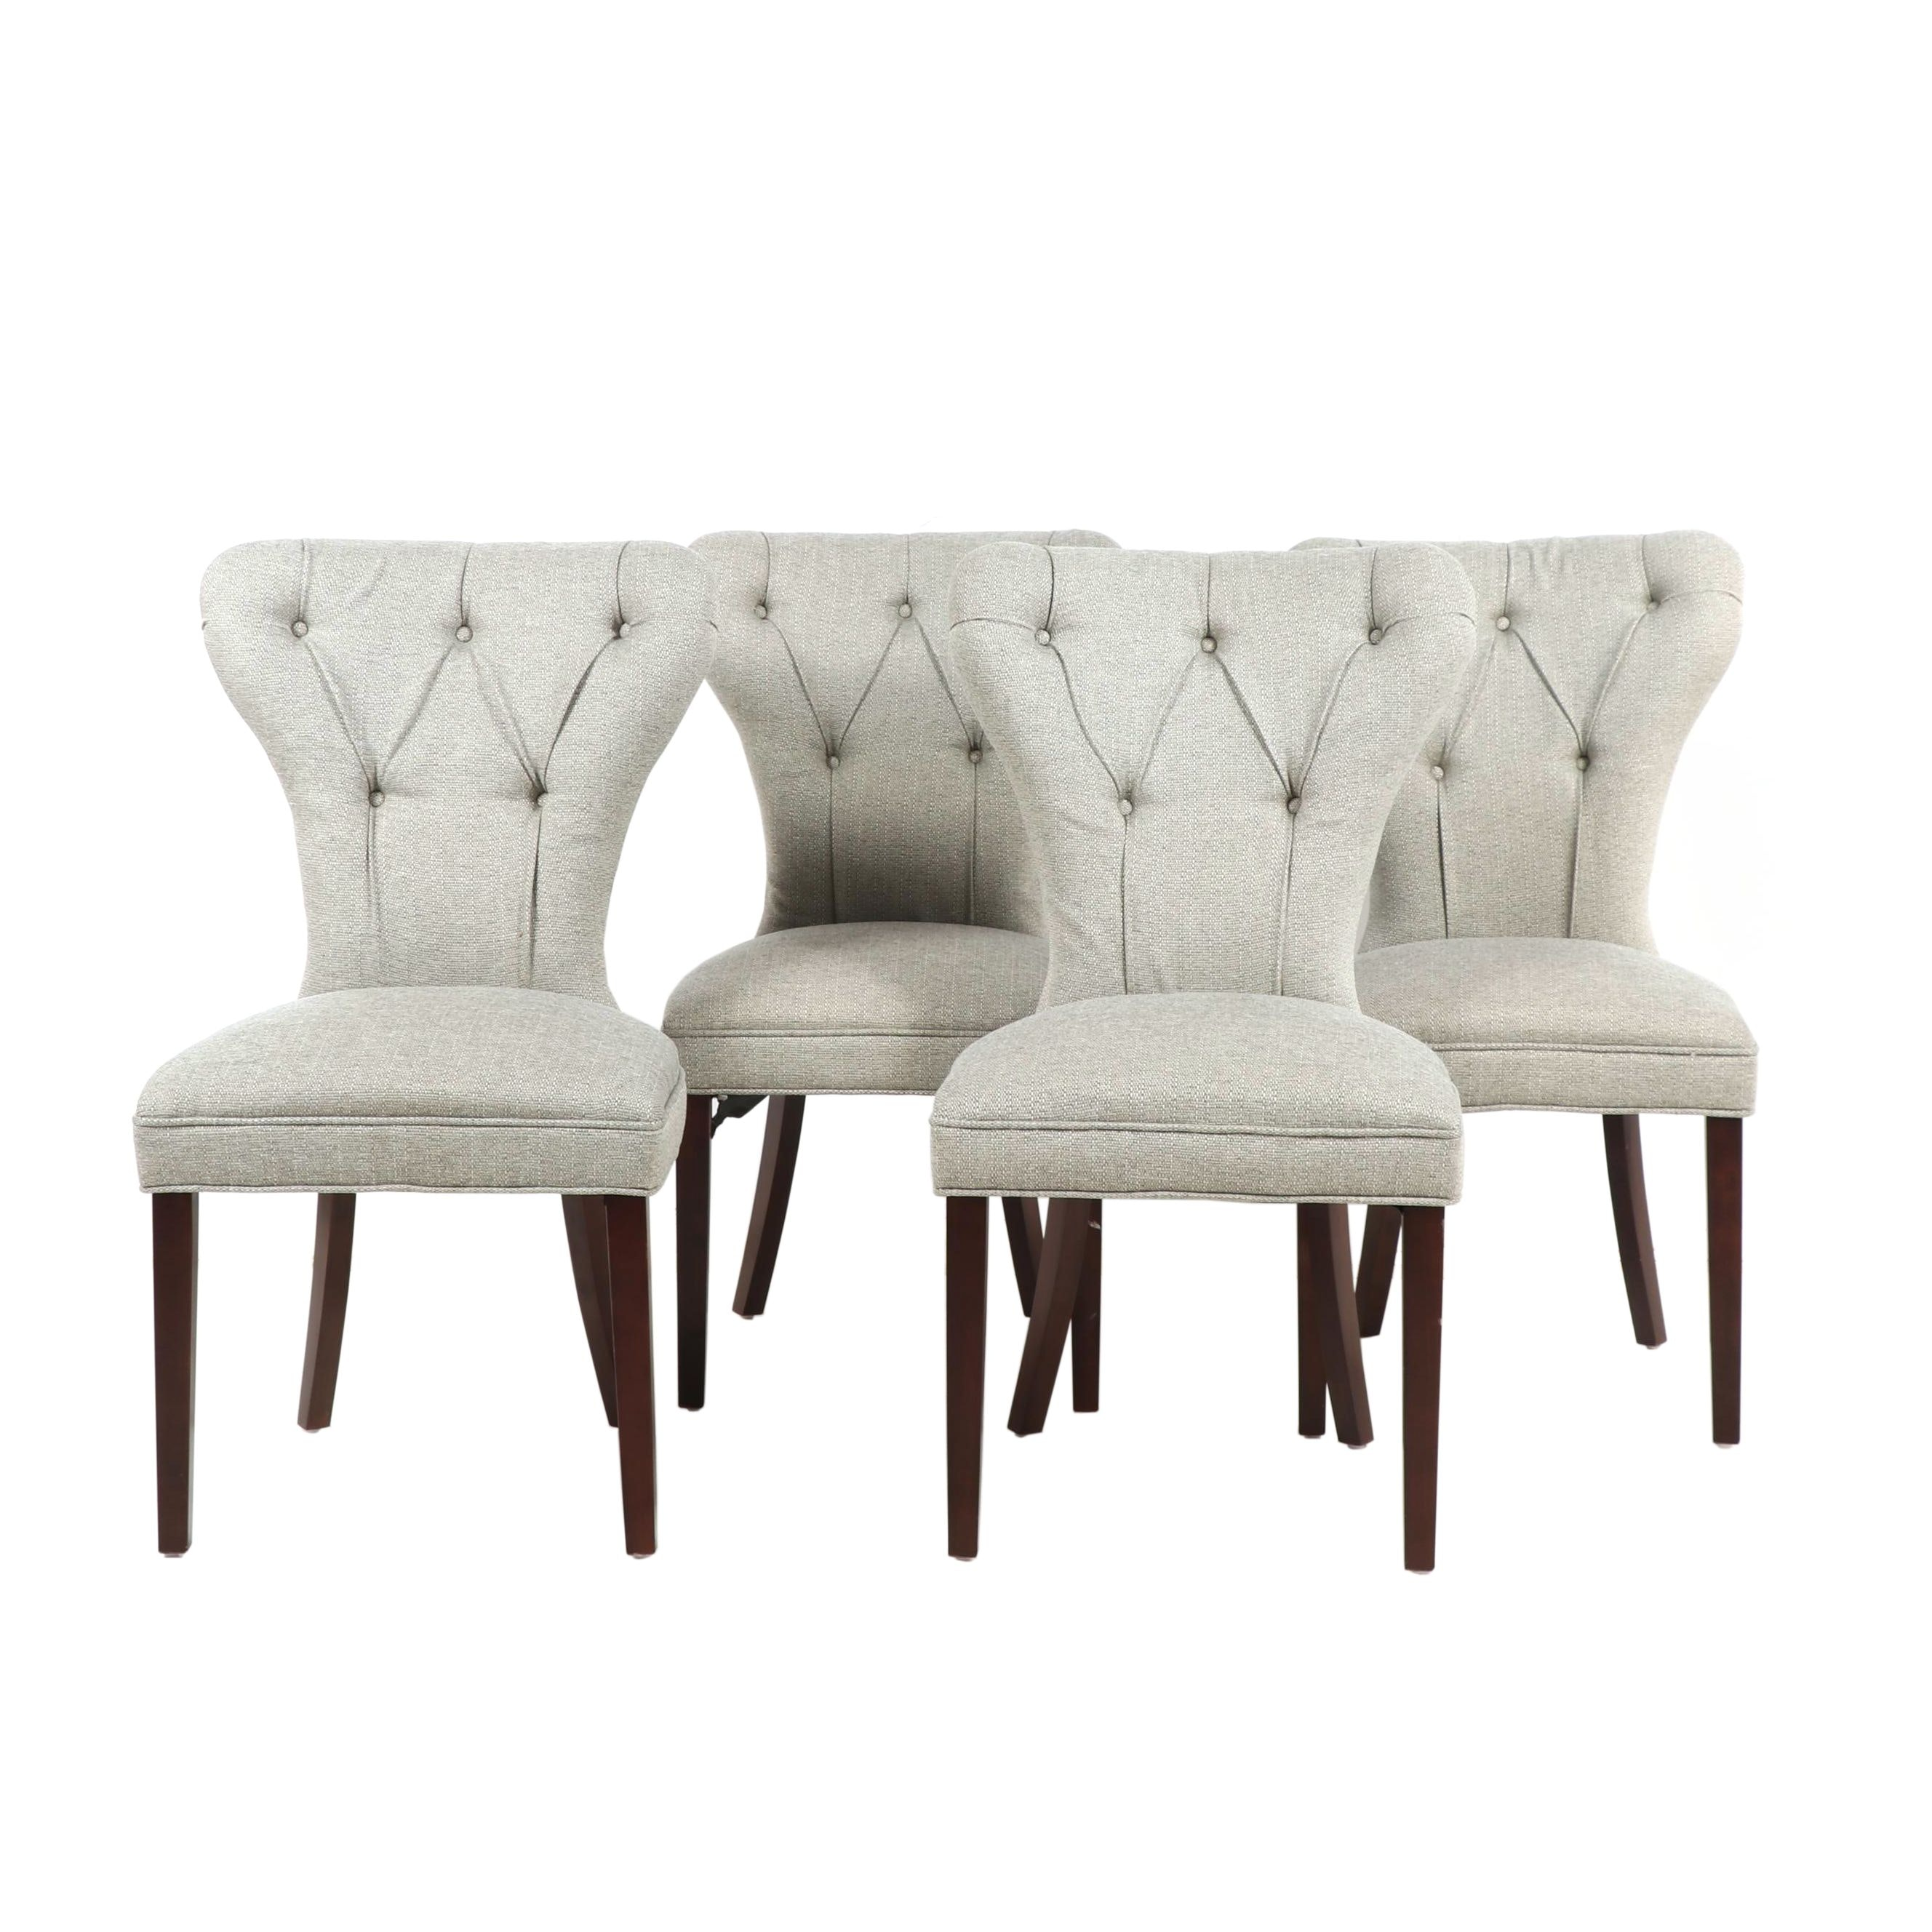 Upholstered Tufted Dining Chairs, Set of Four